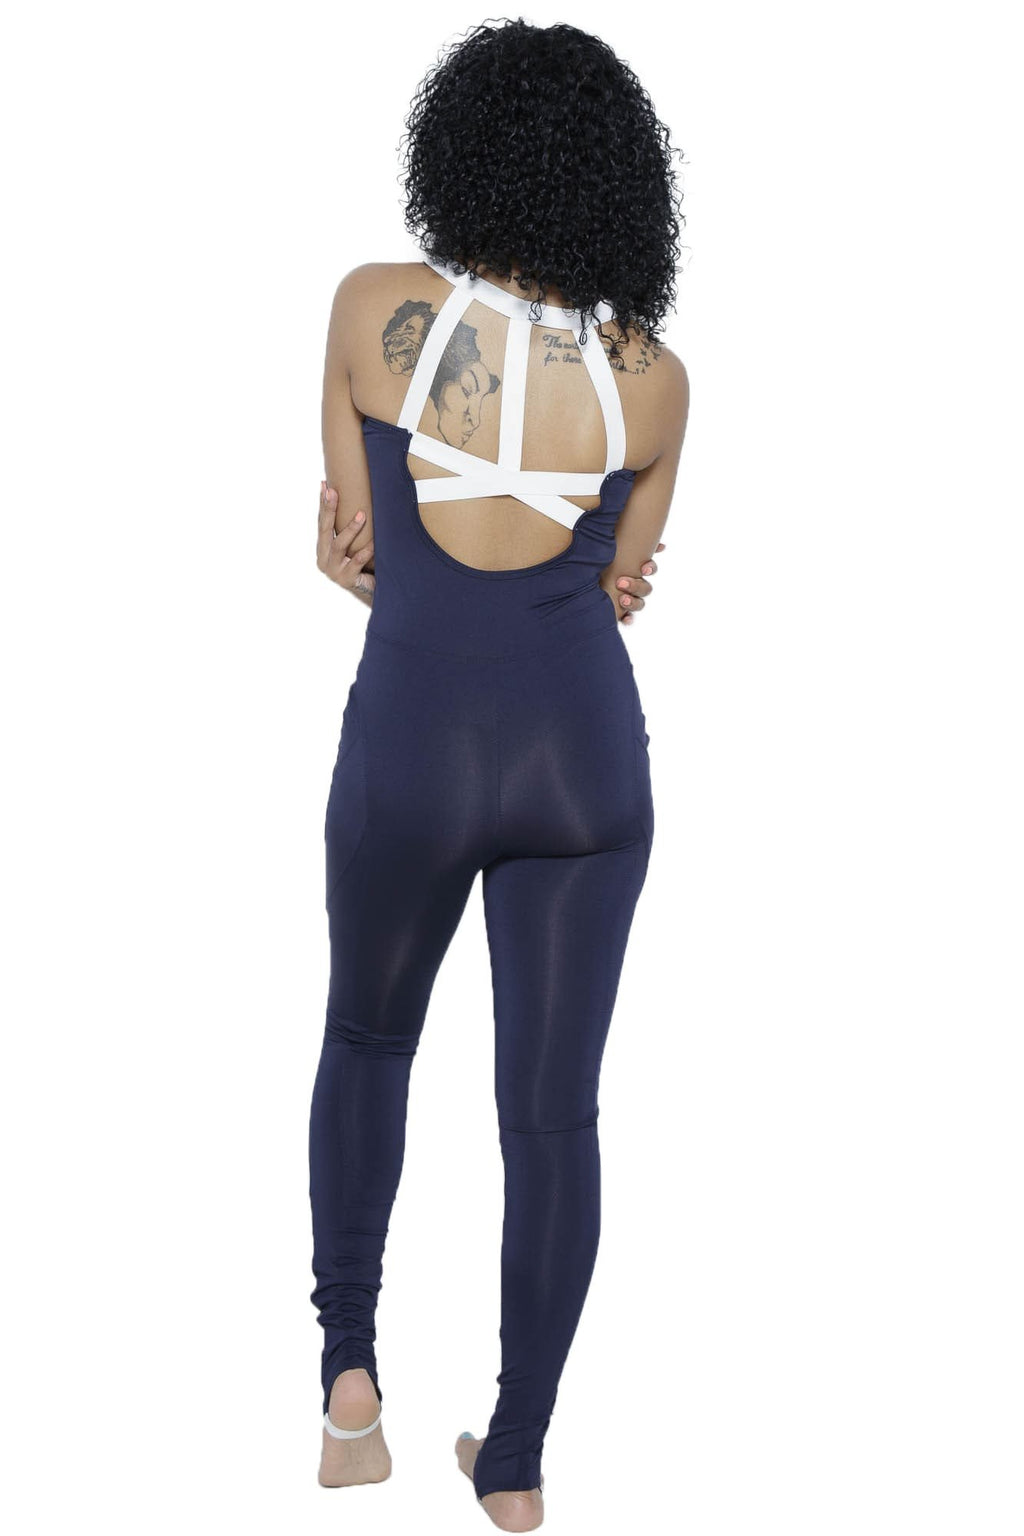 MSFIT Jumpsuit-Navy/White Clothing Fair Shade